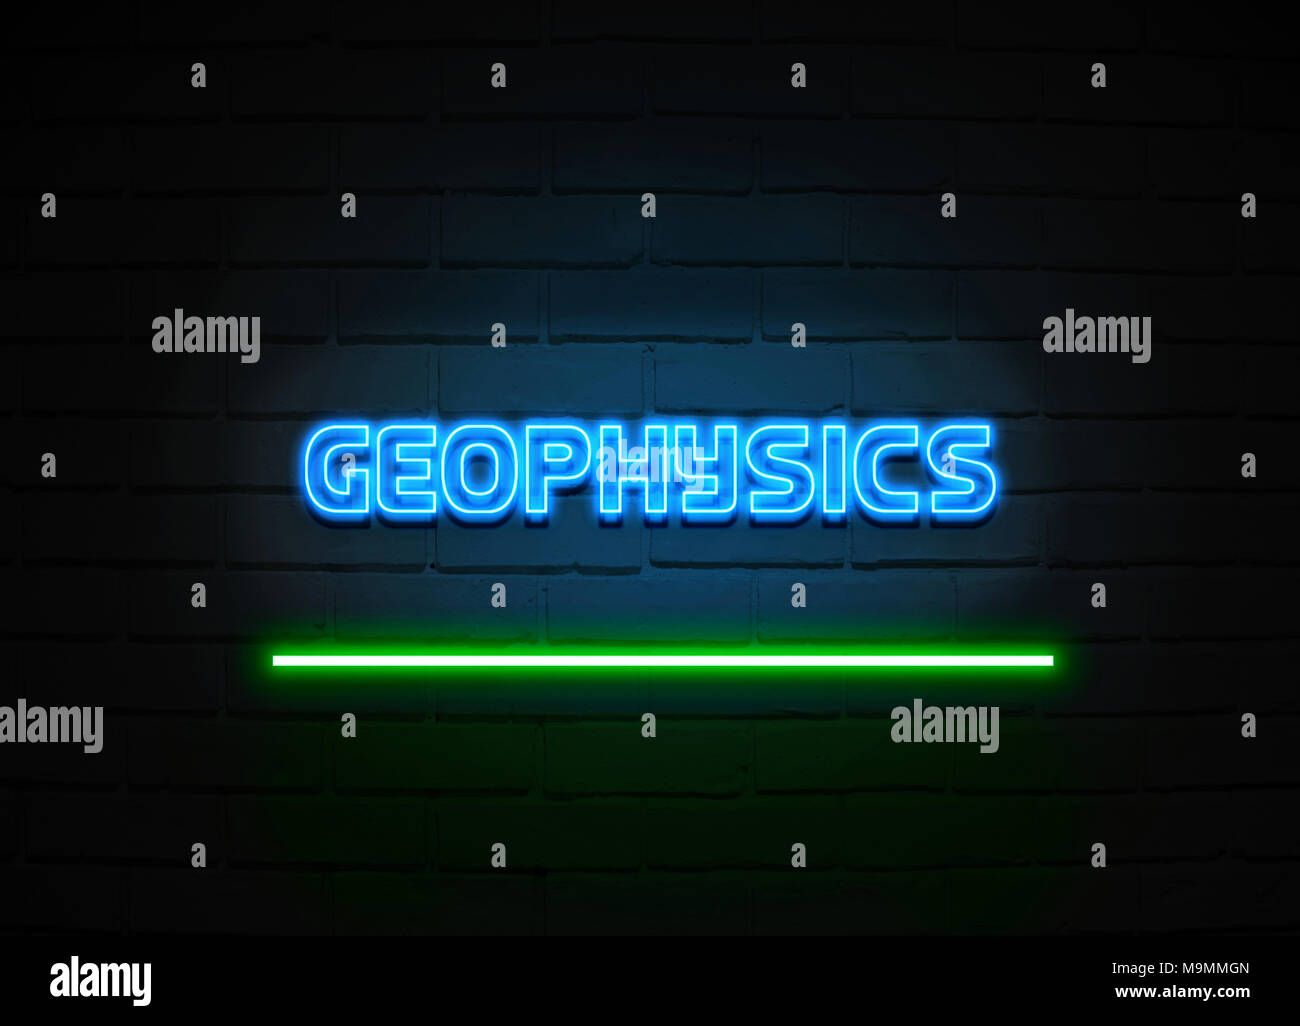 Geophysics neon sign - Glowing Neon Sign on brickwall wall - 3D rendered royalty free stock illustration. - Stock Image